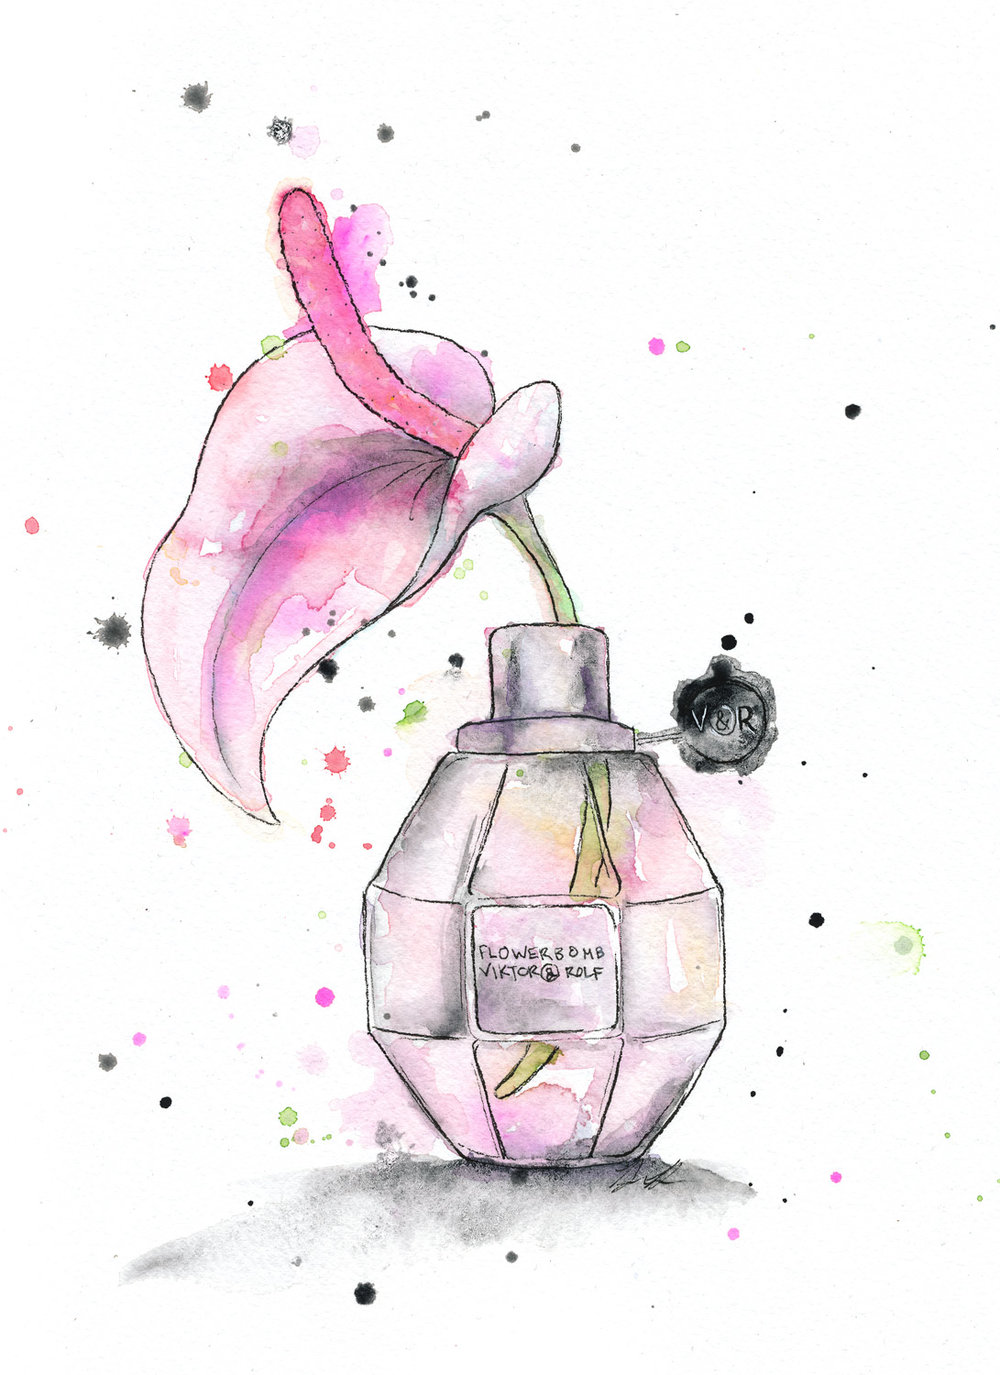 Benjamin-Edward-Viktor-Rolf-Flowerbomb-Peace-Lily-Perfume-watercolour-illustration.jpg